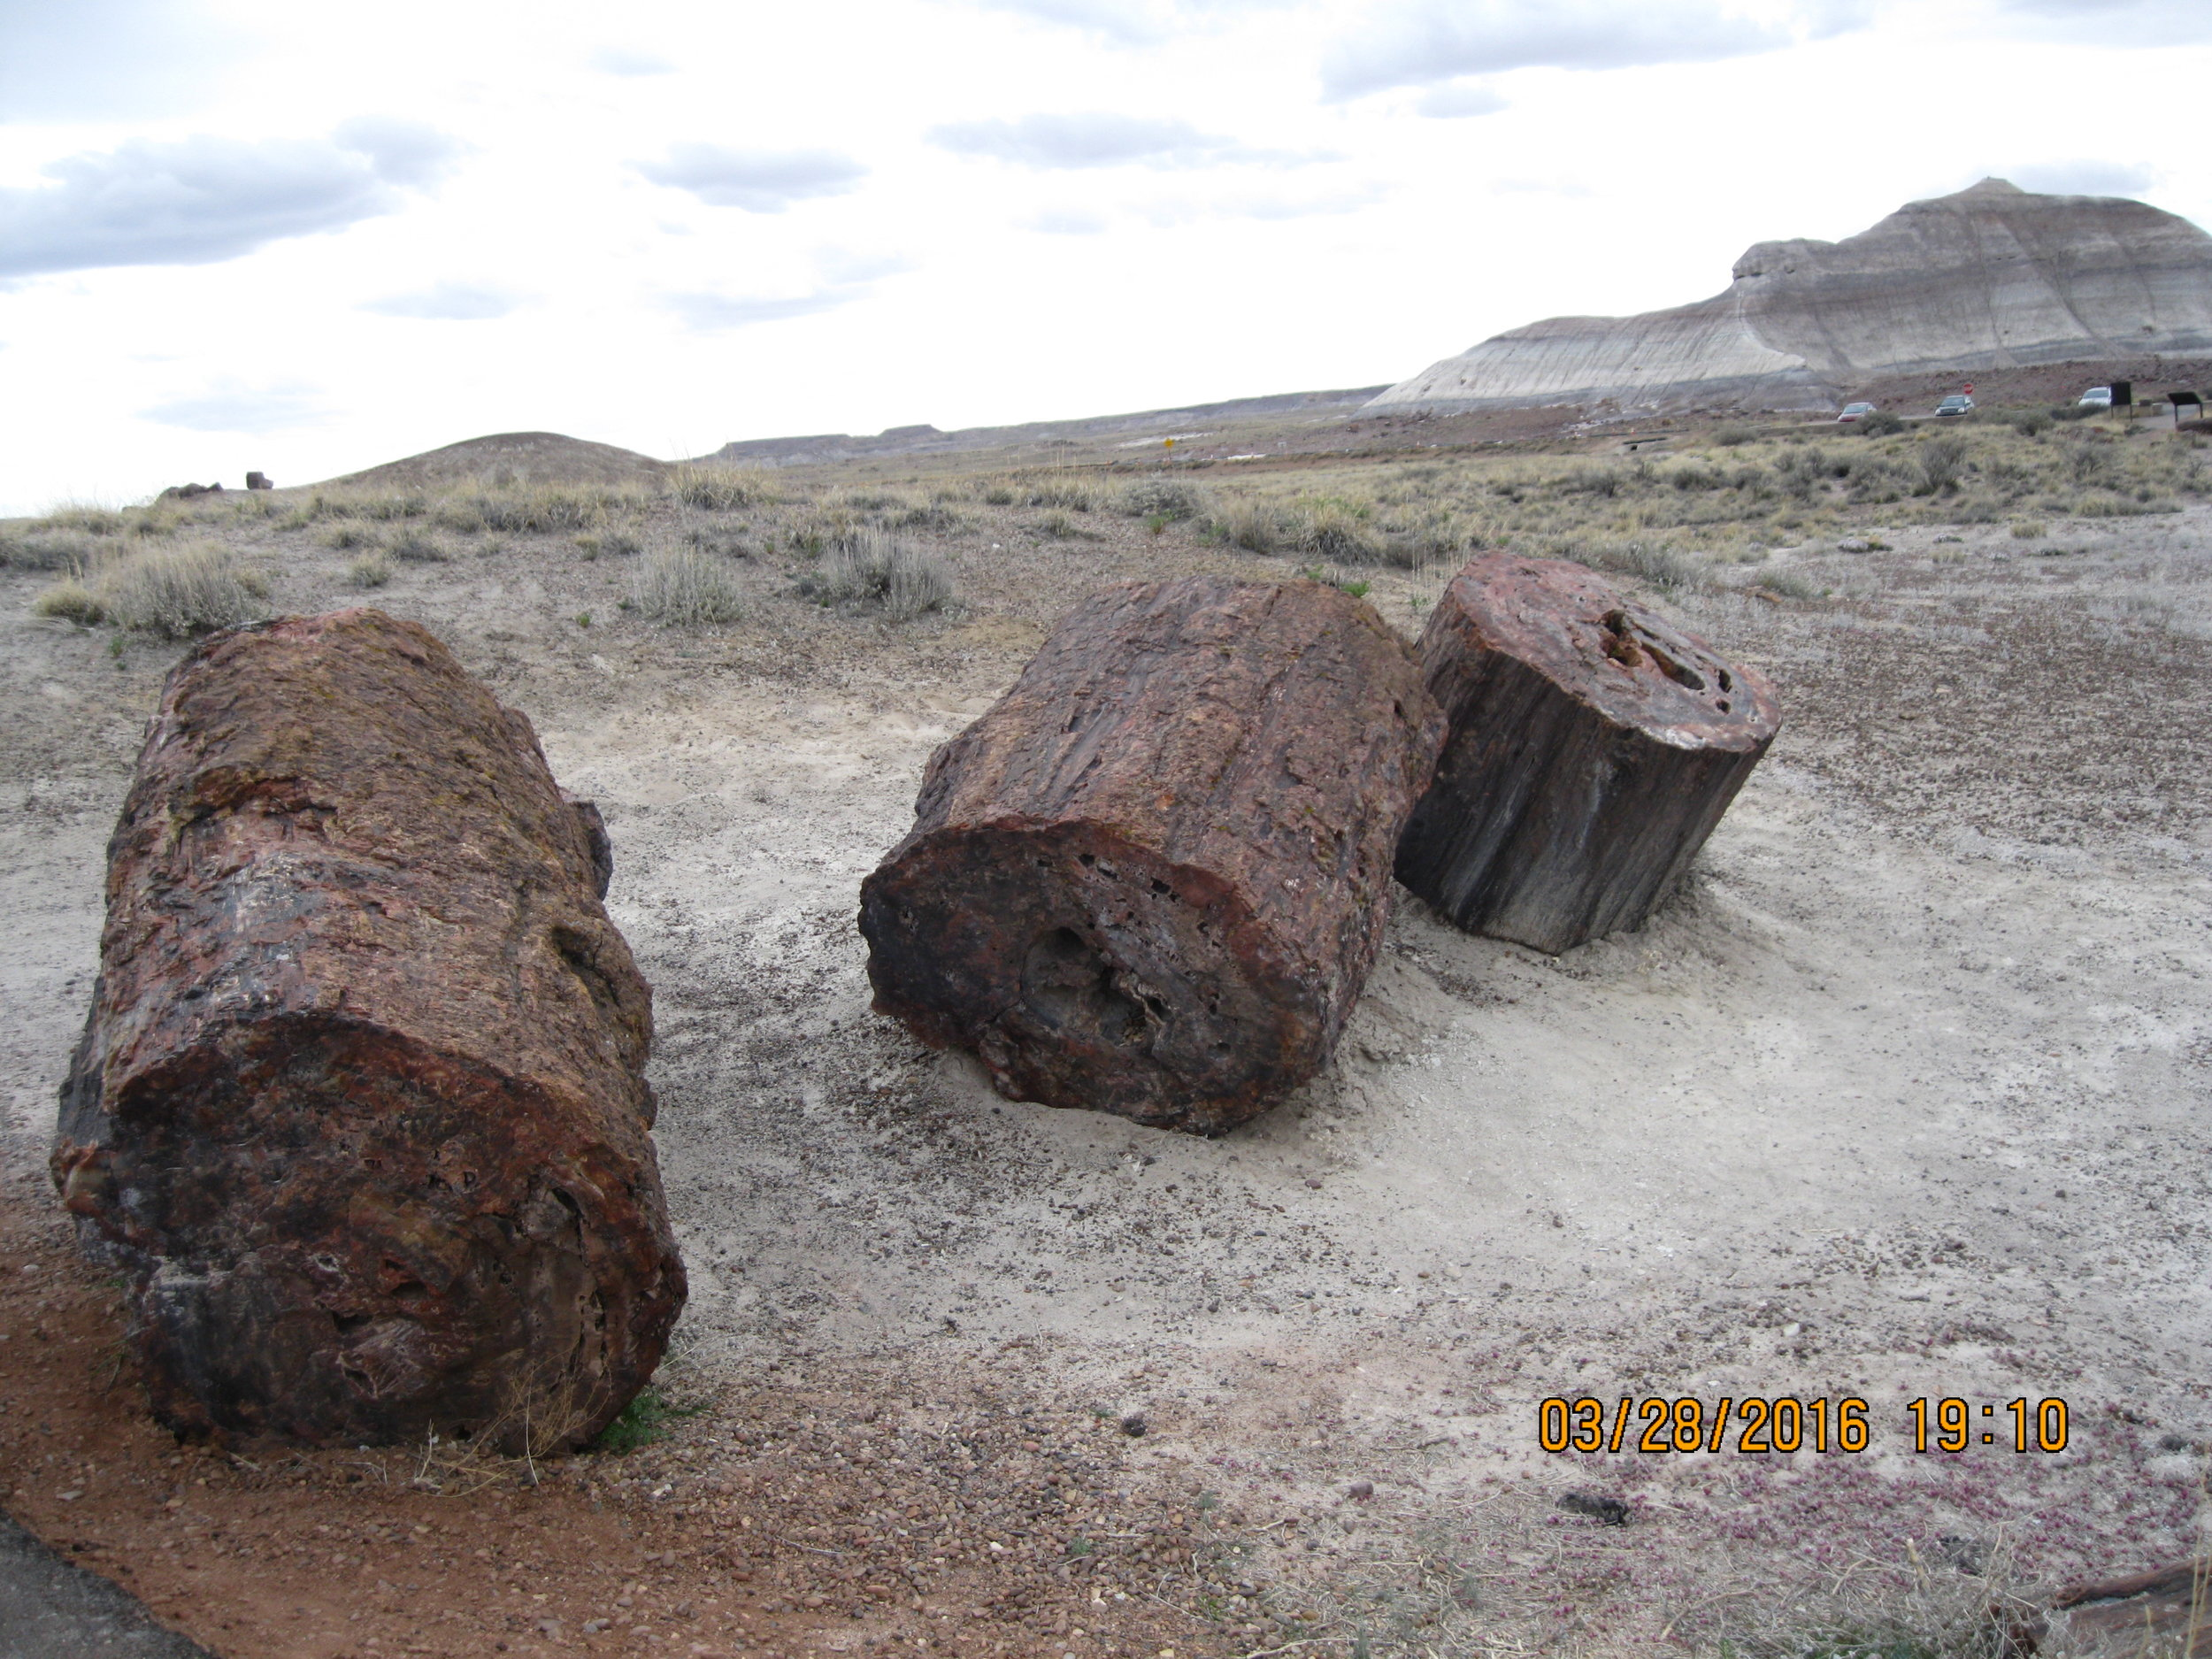 Petrified wood from sipra's trip to the Southwest. Petrified Forest National Park